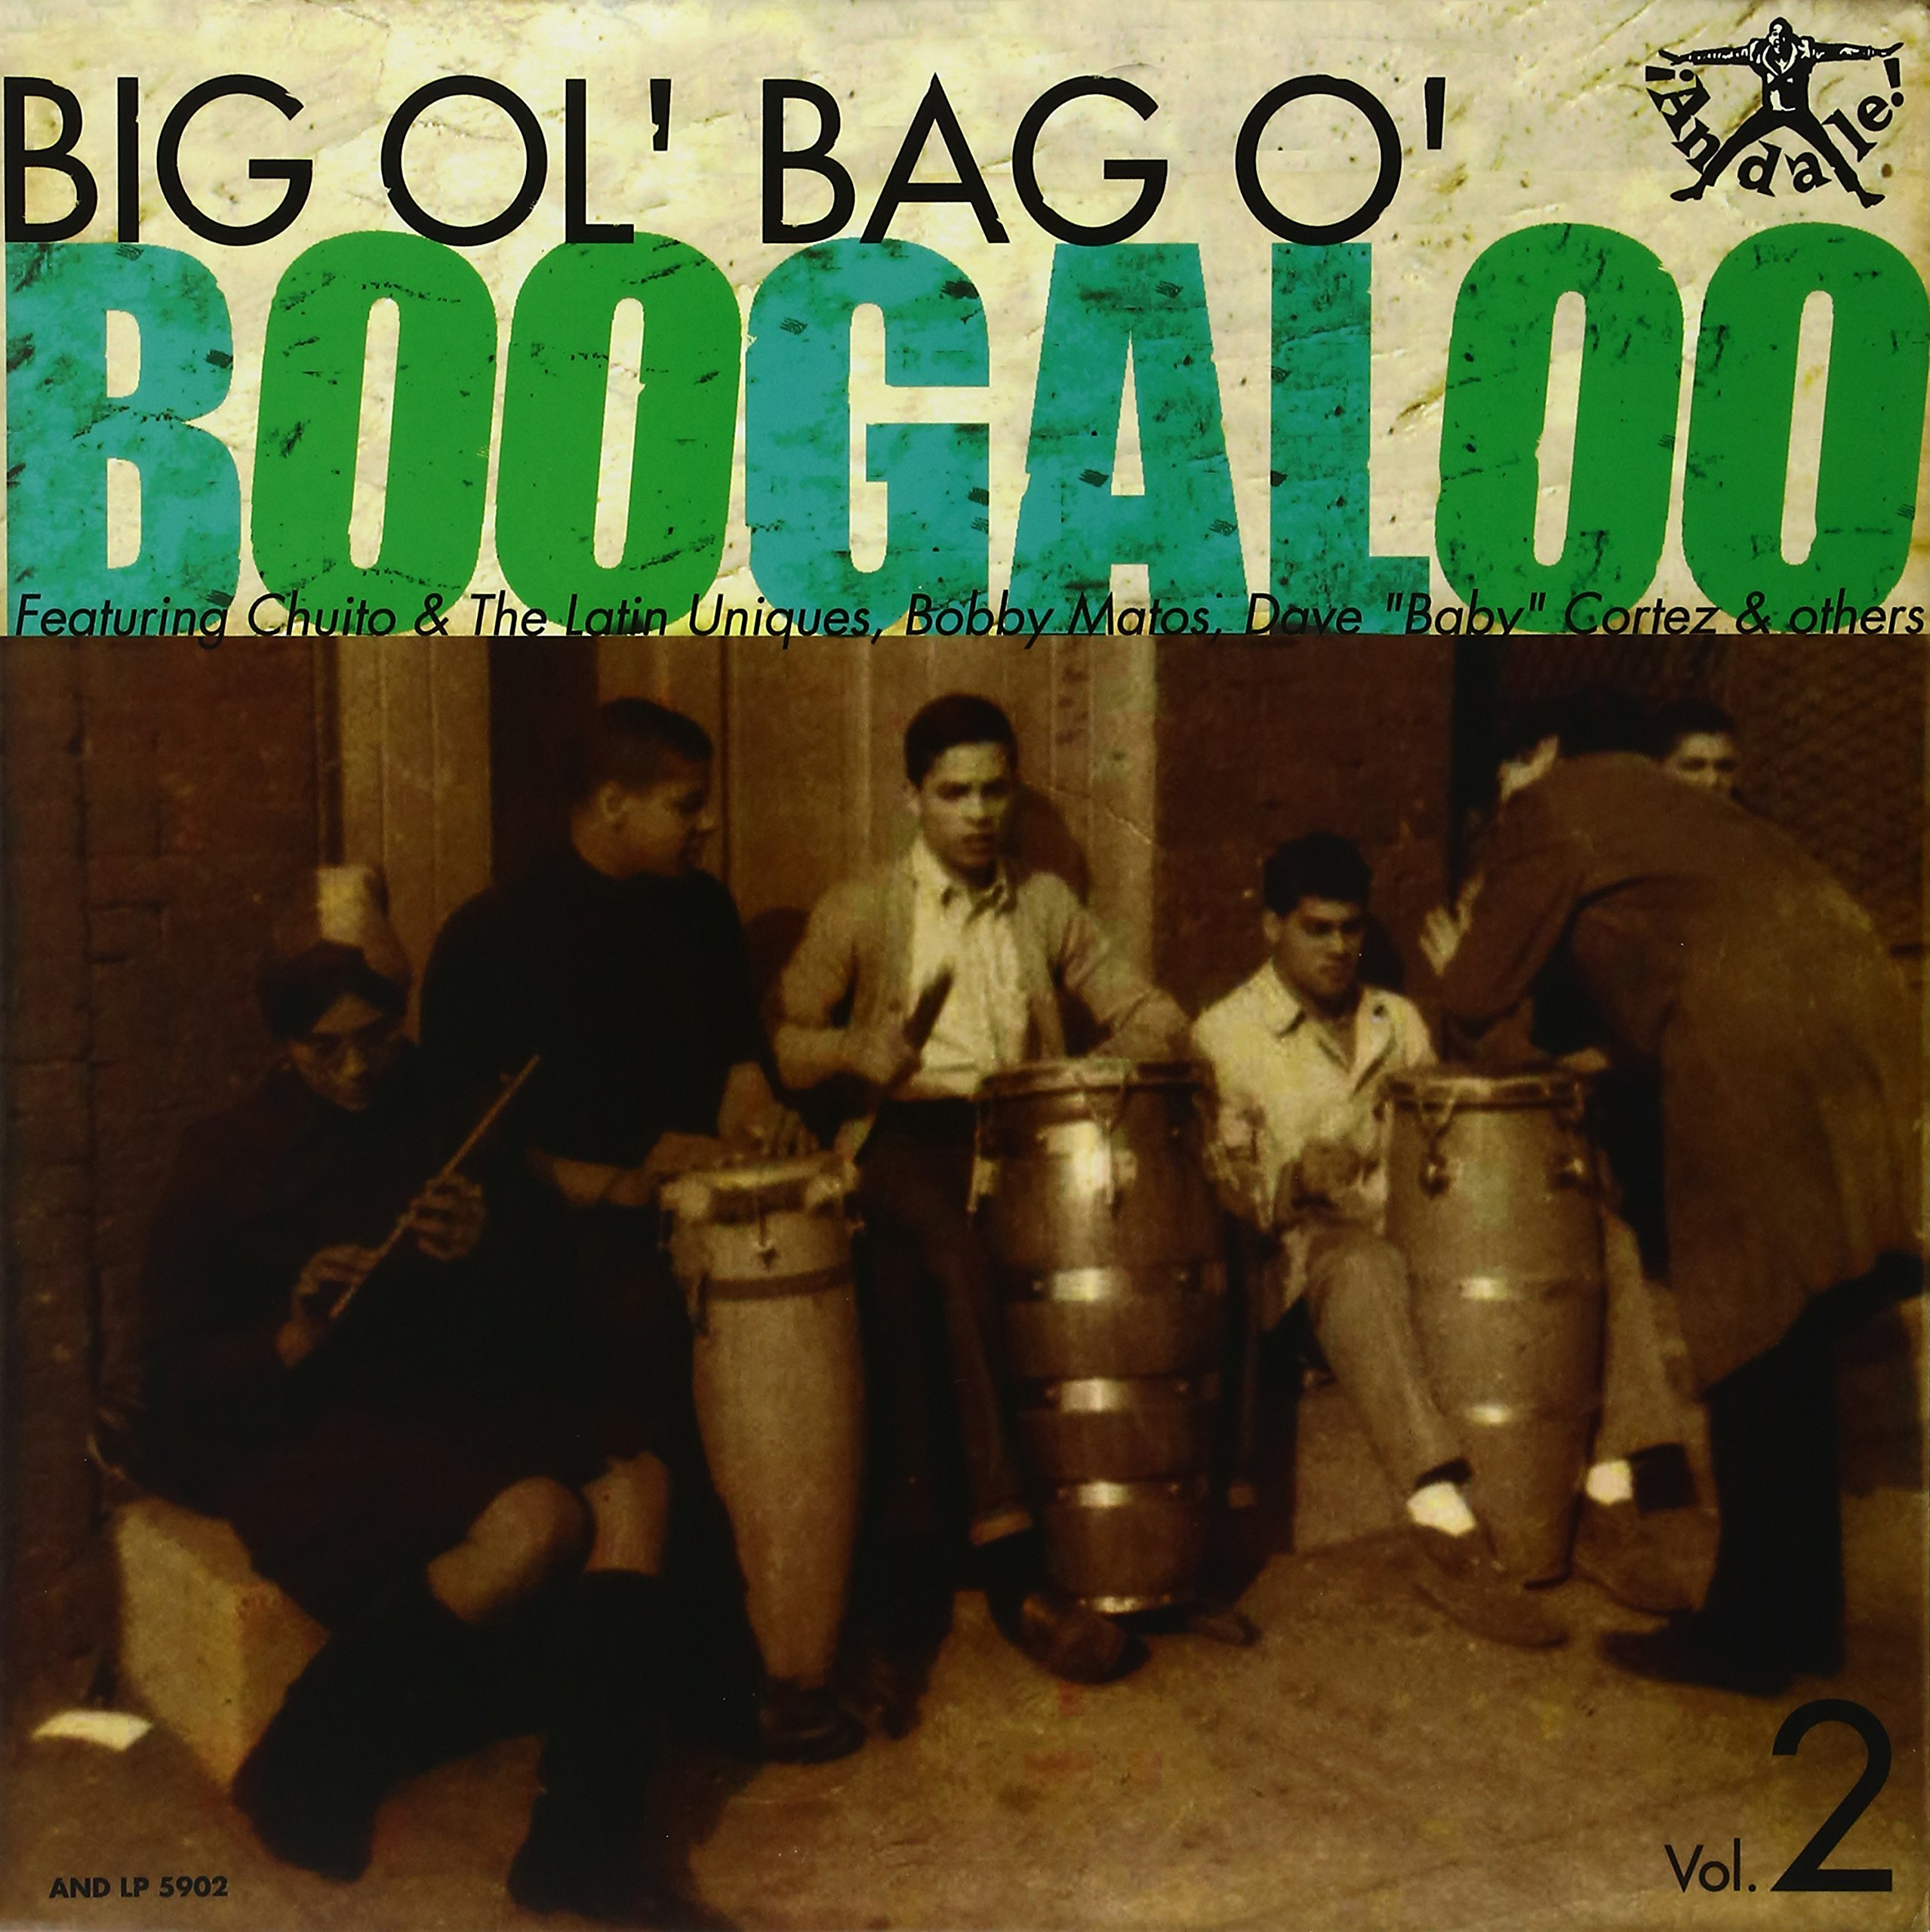 Vinilo : VARIOUS ARTISTS - Big Ol' Bag Of Boogaloo, Vol. 2 (various Artists) (LP Vinyl)